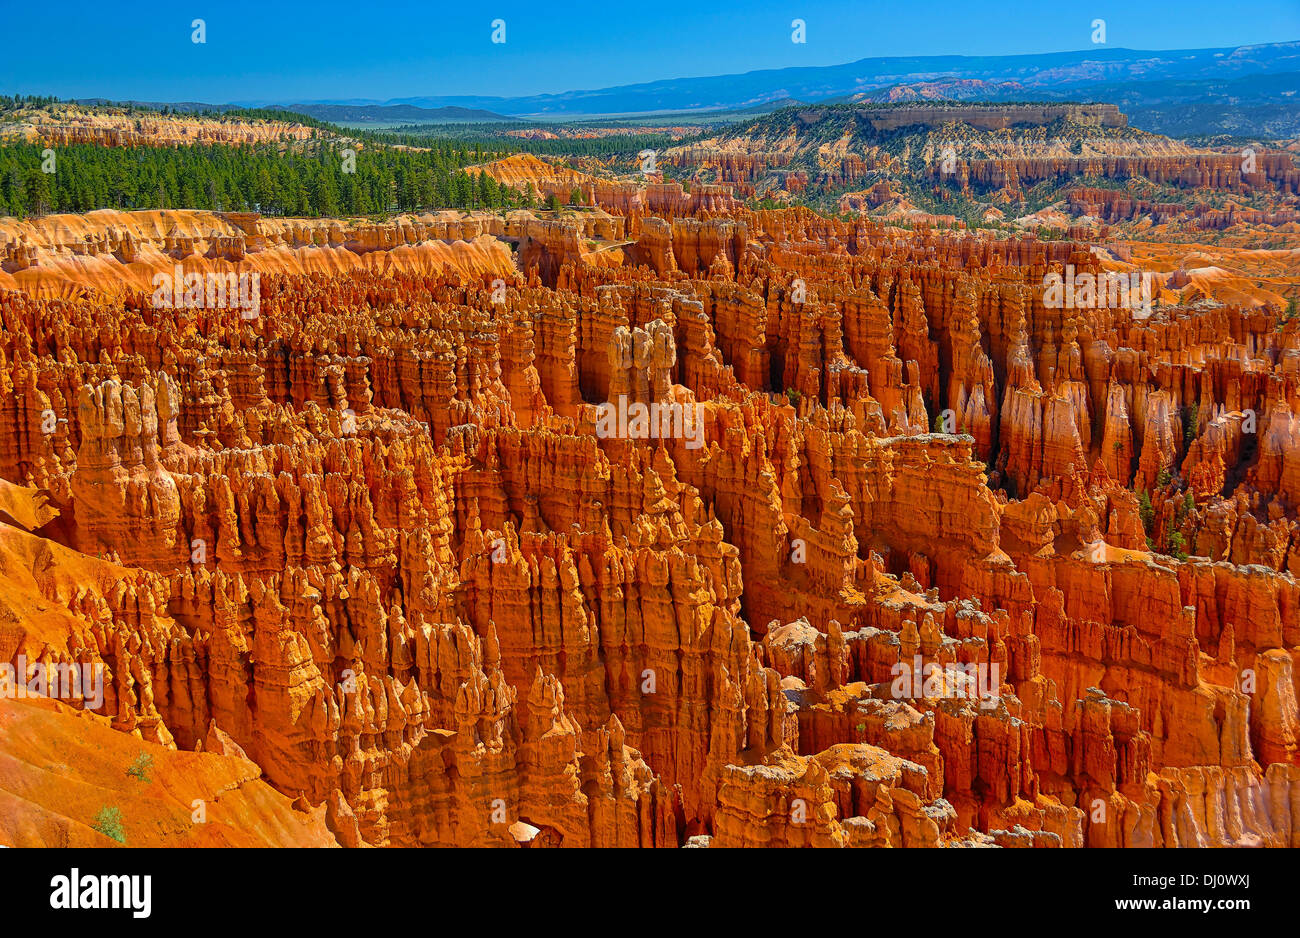 The extraordinary amphitheater of rocks at Bryce Canyon National Park in  Utah, USA. Stock Photo